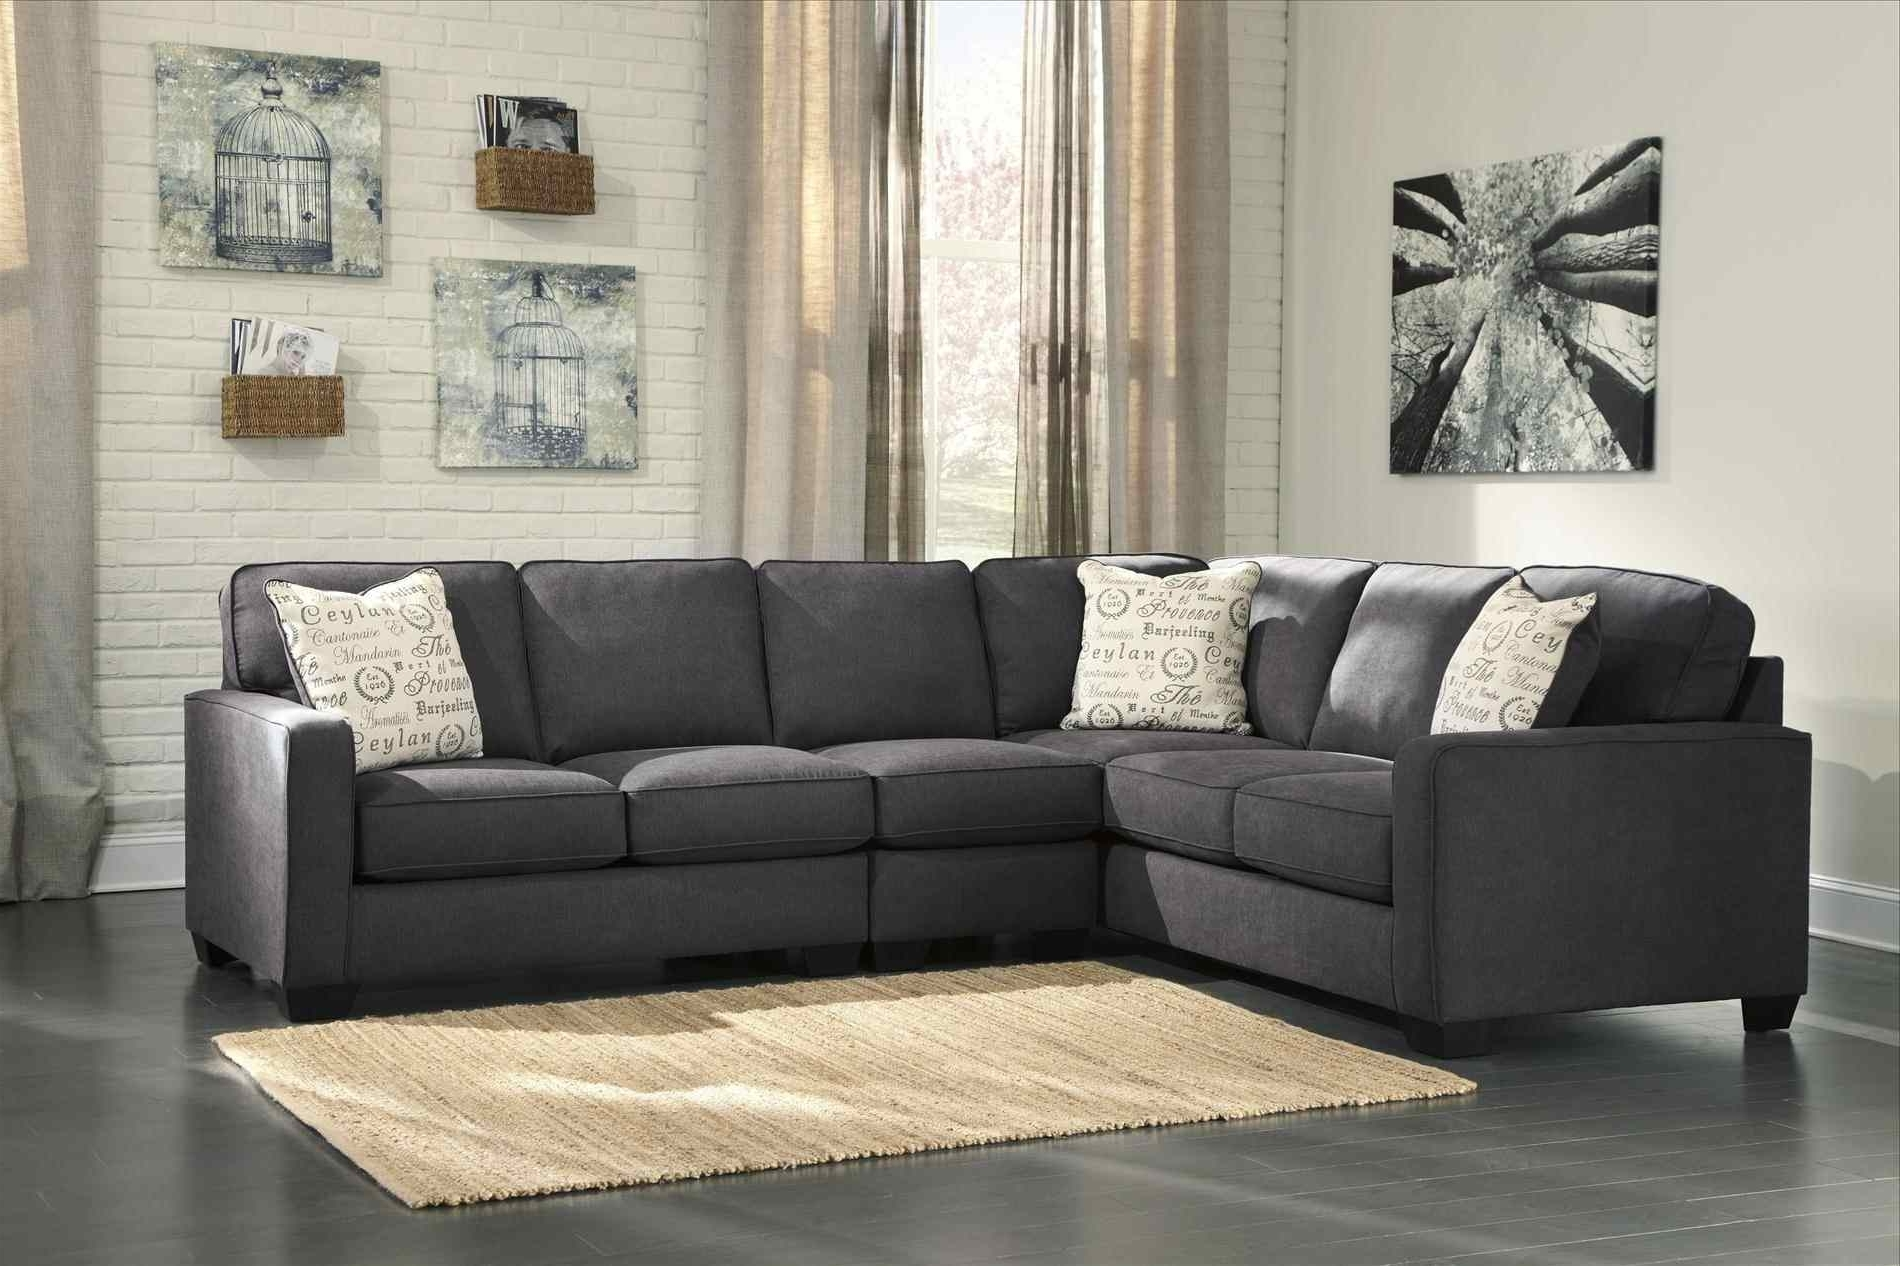 Sofa : Simmons Chaise Gray Sectional Sofa With Cheap S Under Pertaining To Best And Newest Simmons Chaise Sofas (View 13 of 15)